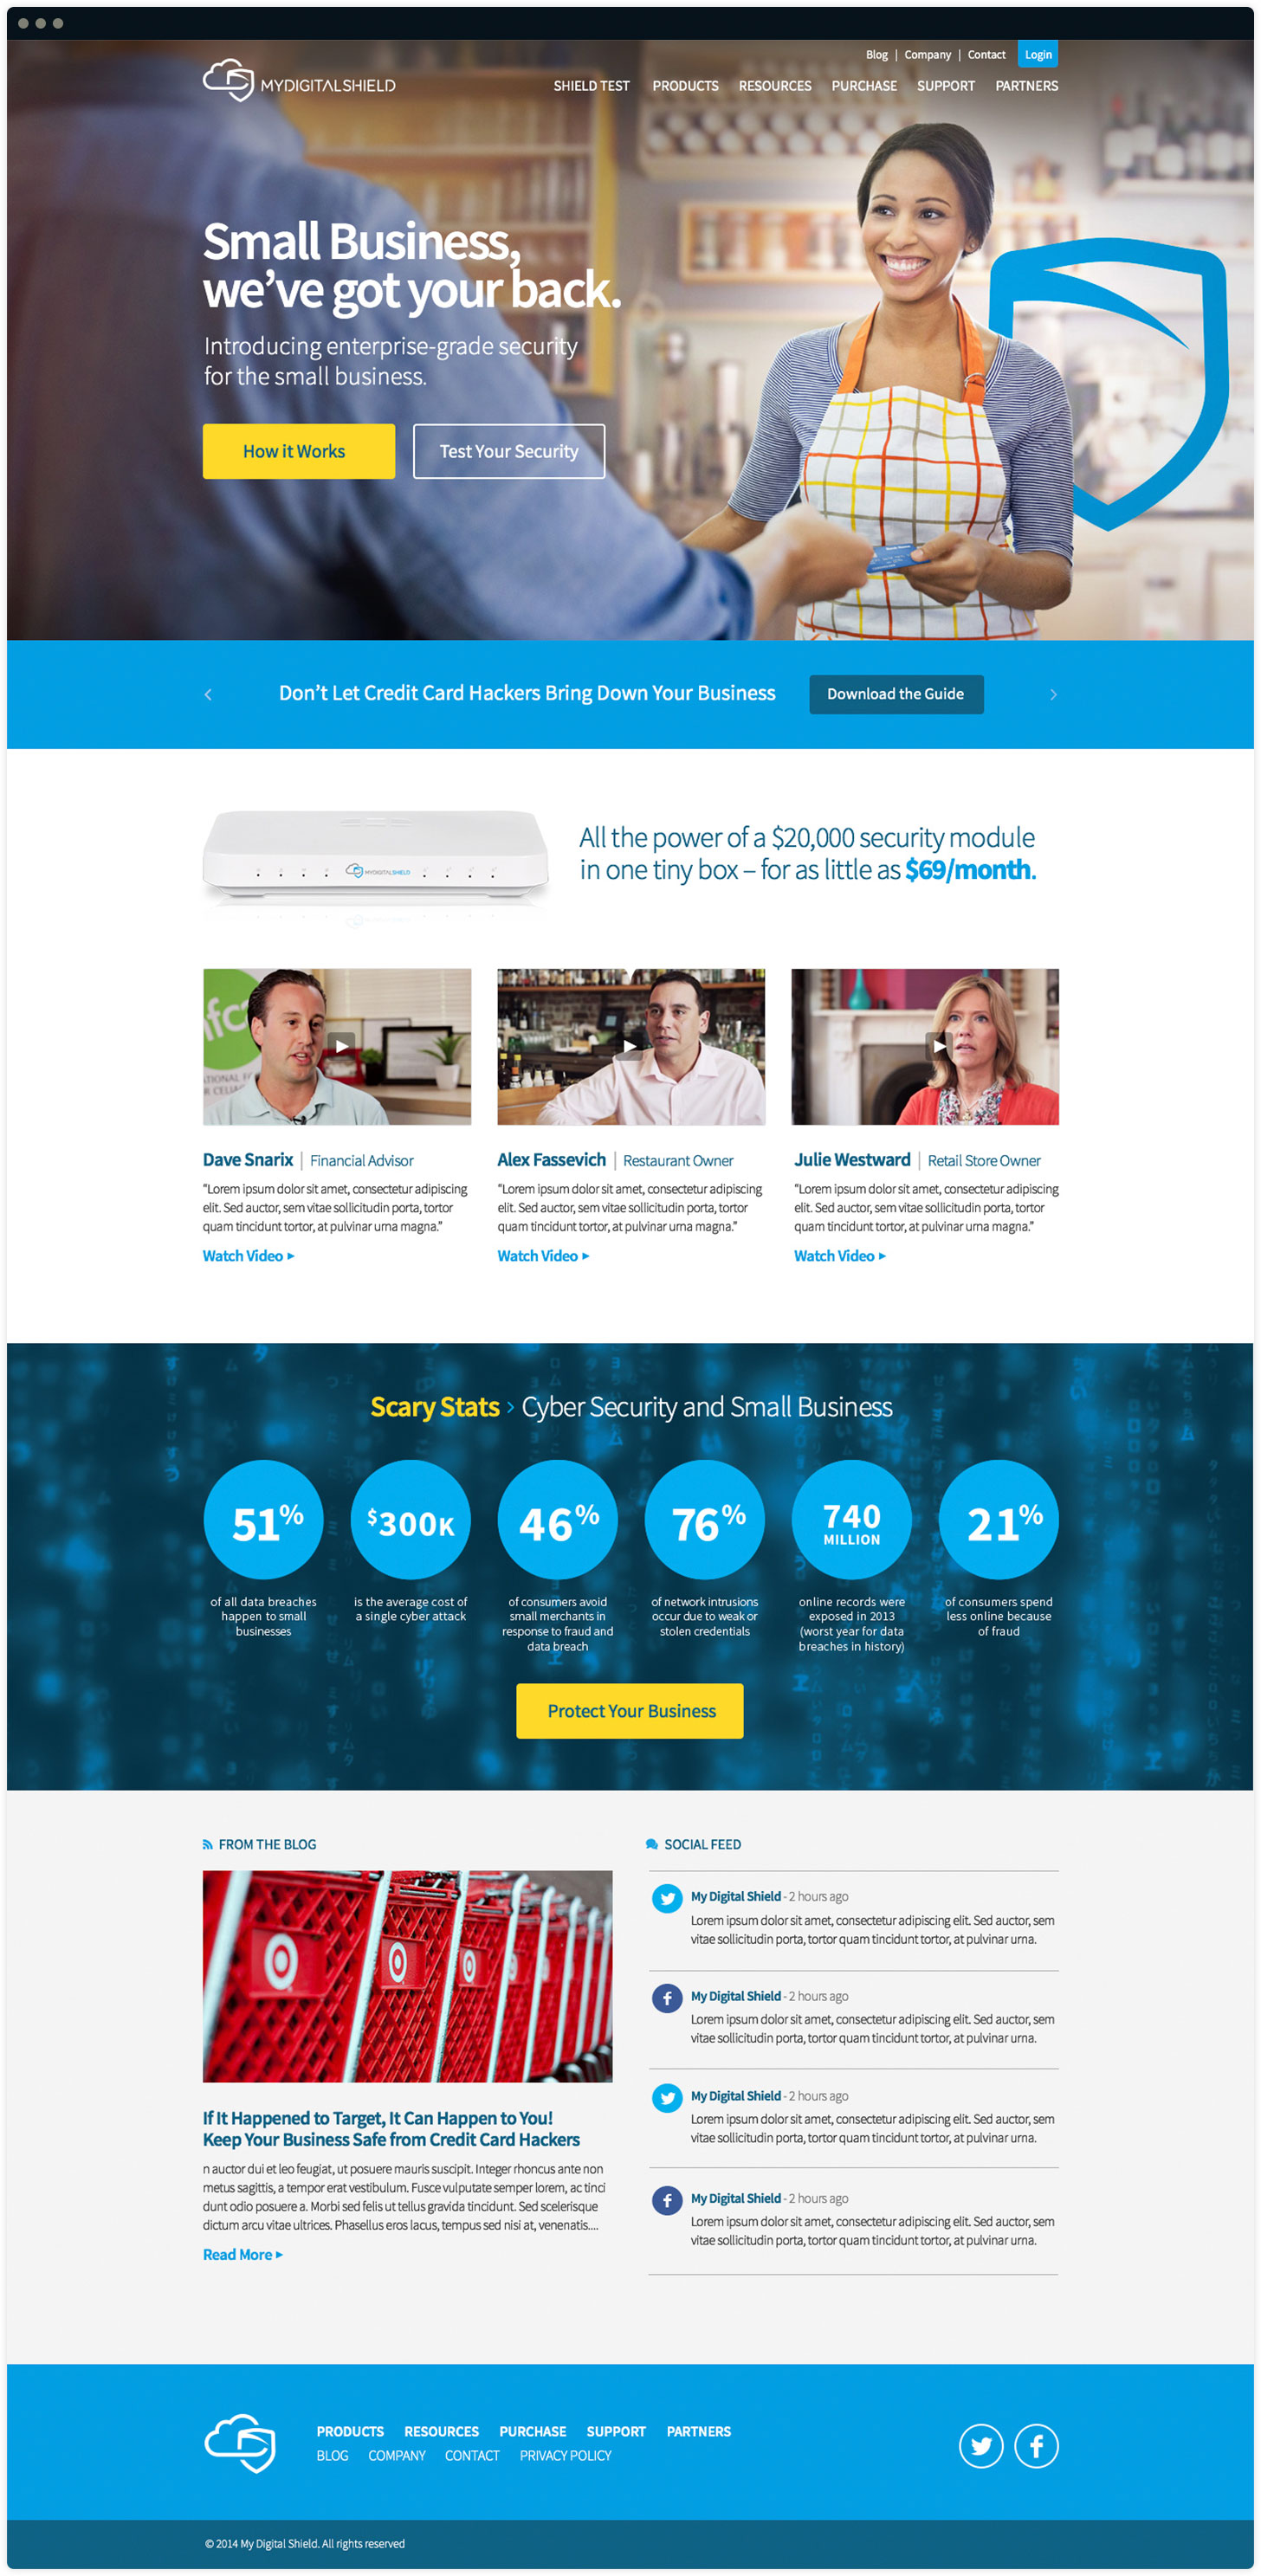 MyDigitalShield Website Design by Salted Stone